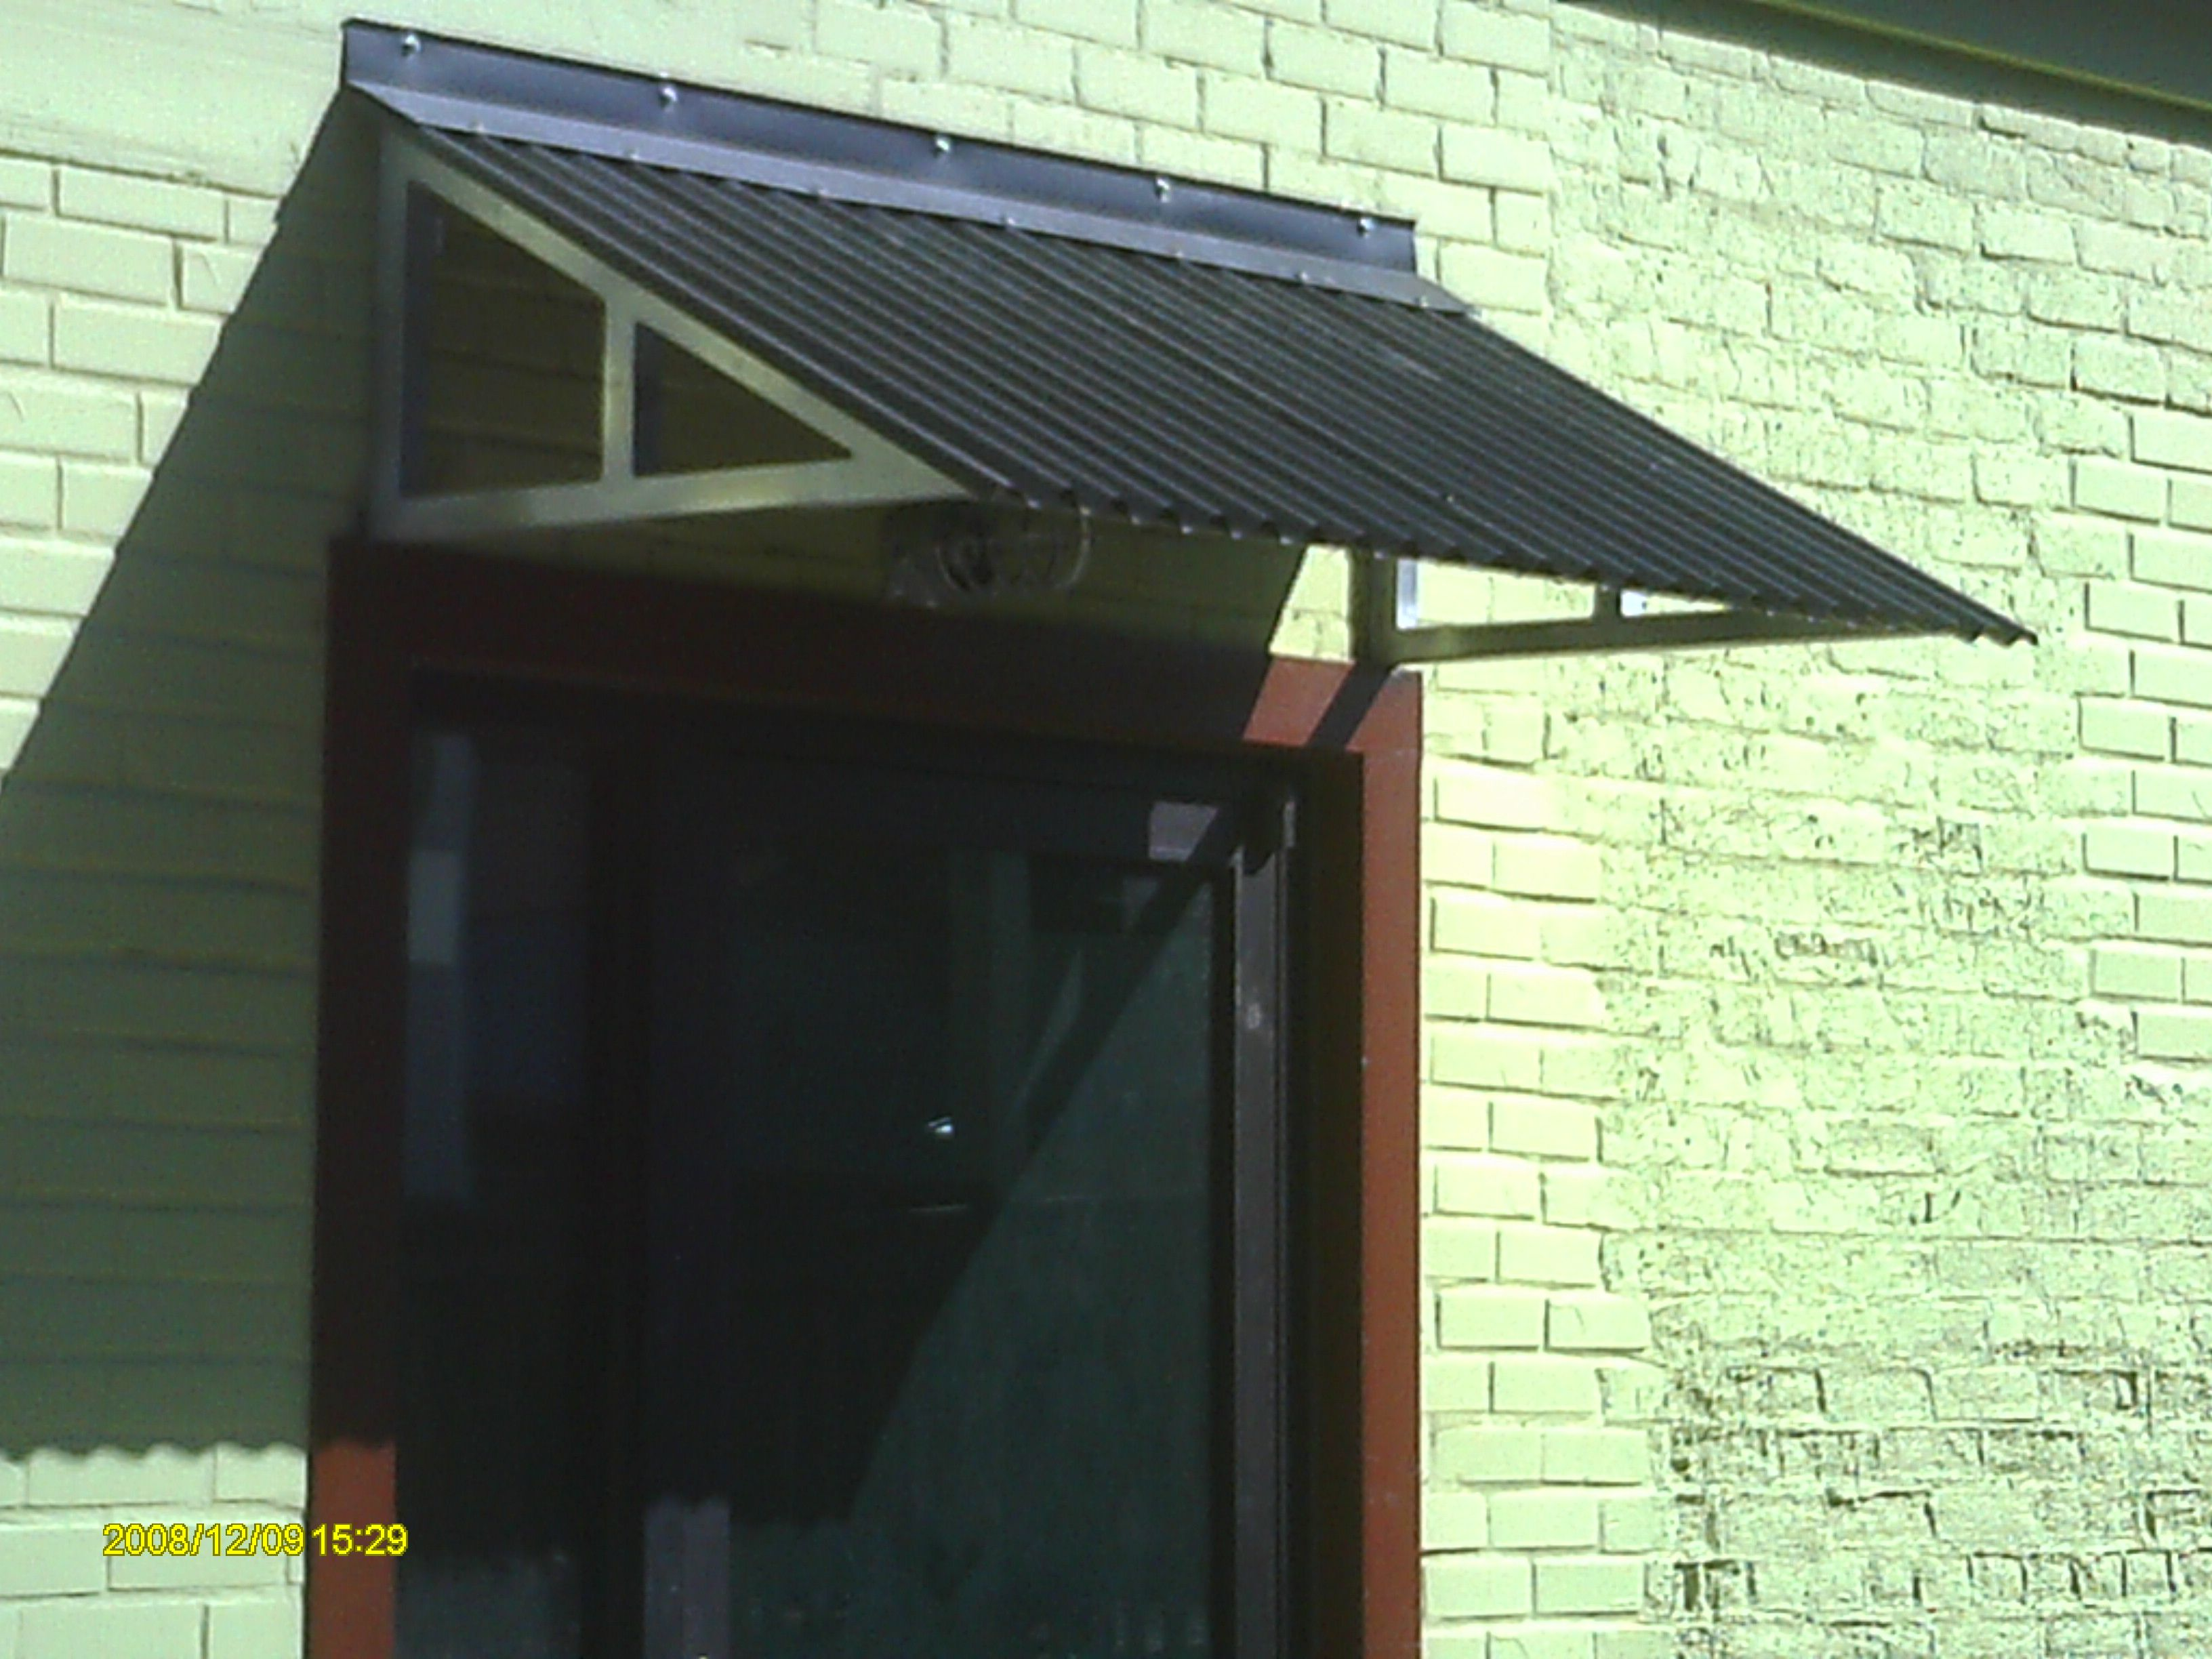 All Of Our Awnings And Covers Can Be Colored To Match Your Individual Tastes And Metal Awning Metal Awnings For Windows Metal Door Awning